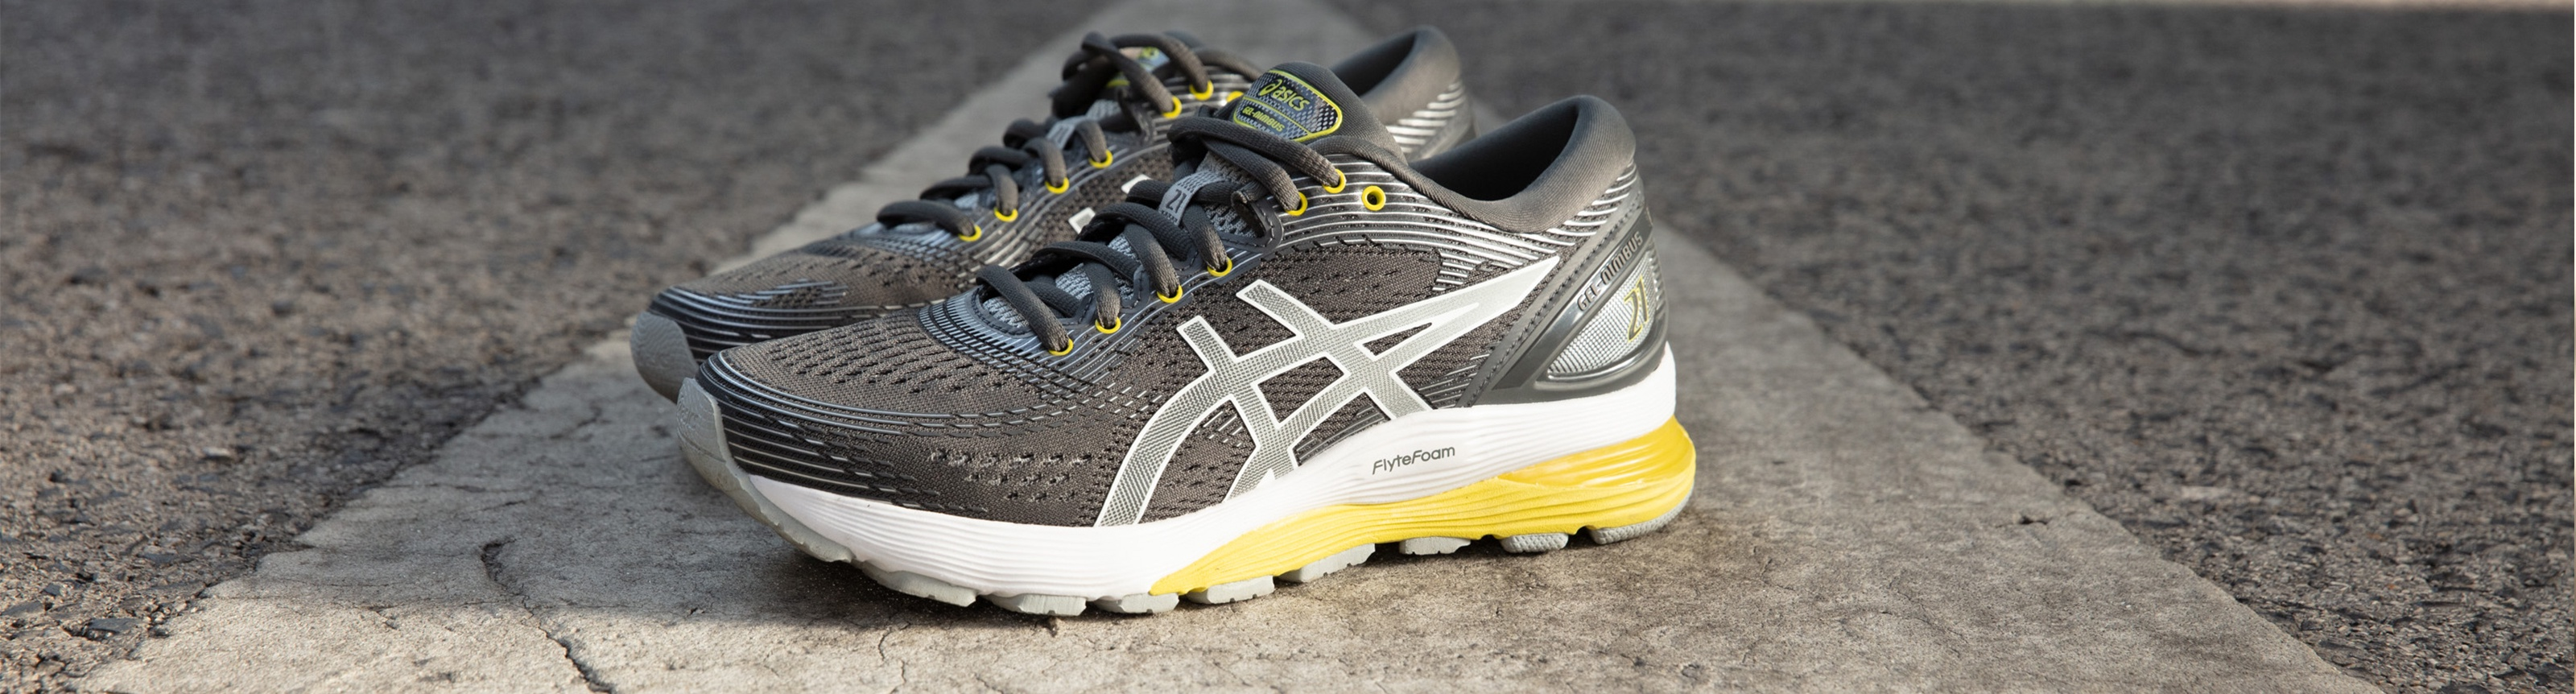 Grey and Yellow Gel-Nimbus 21 running shoes sitting on the ground